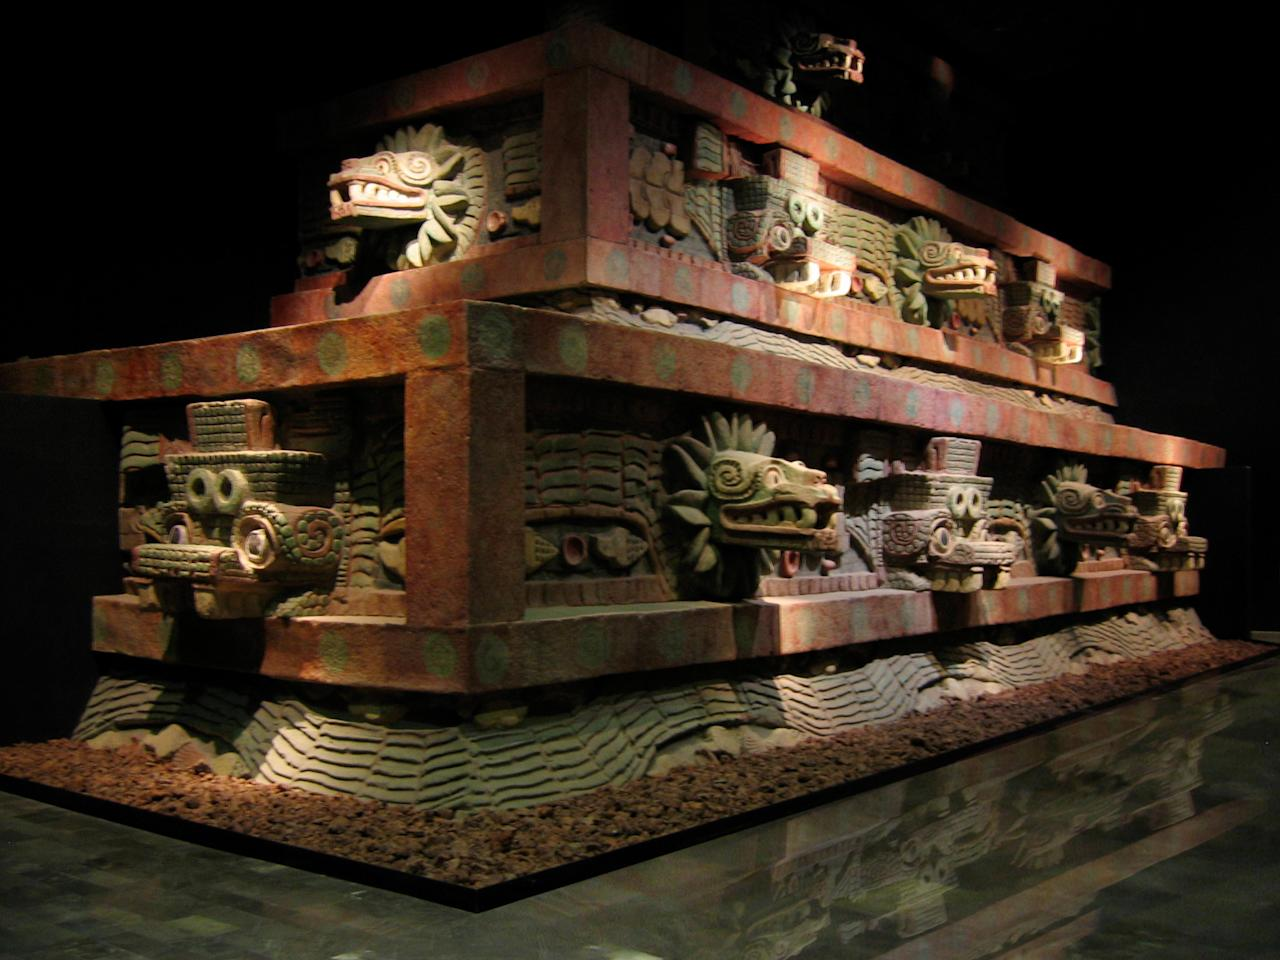 <p>Mexico's national museum is also its largest and the most visited. The National Museum of Anthropology contains some of the most important artefacts from the country's pre-Columbian heritage. Well tagged and documented, the exhibits attract more than two million visitors every year.<br />Photograph: Xuan Che/Flickr </p>